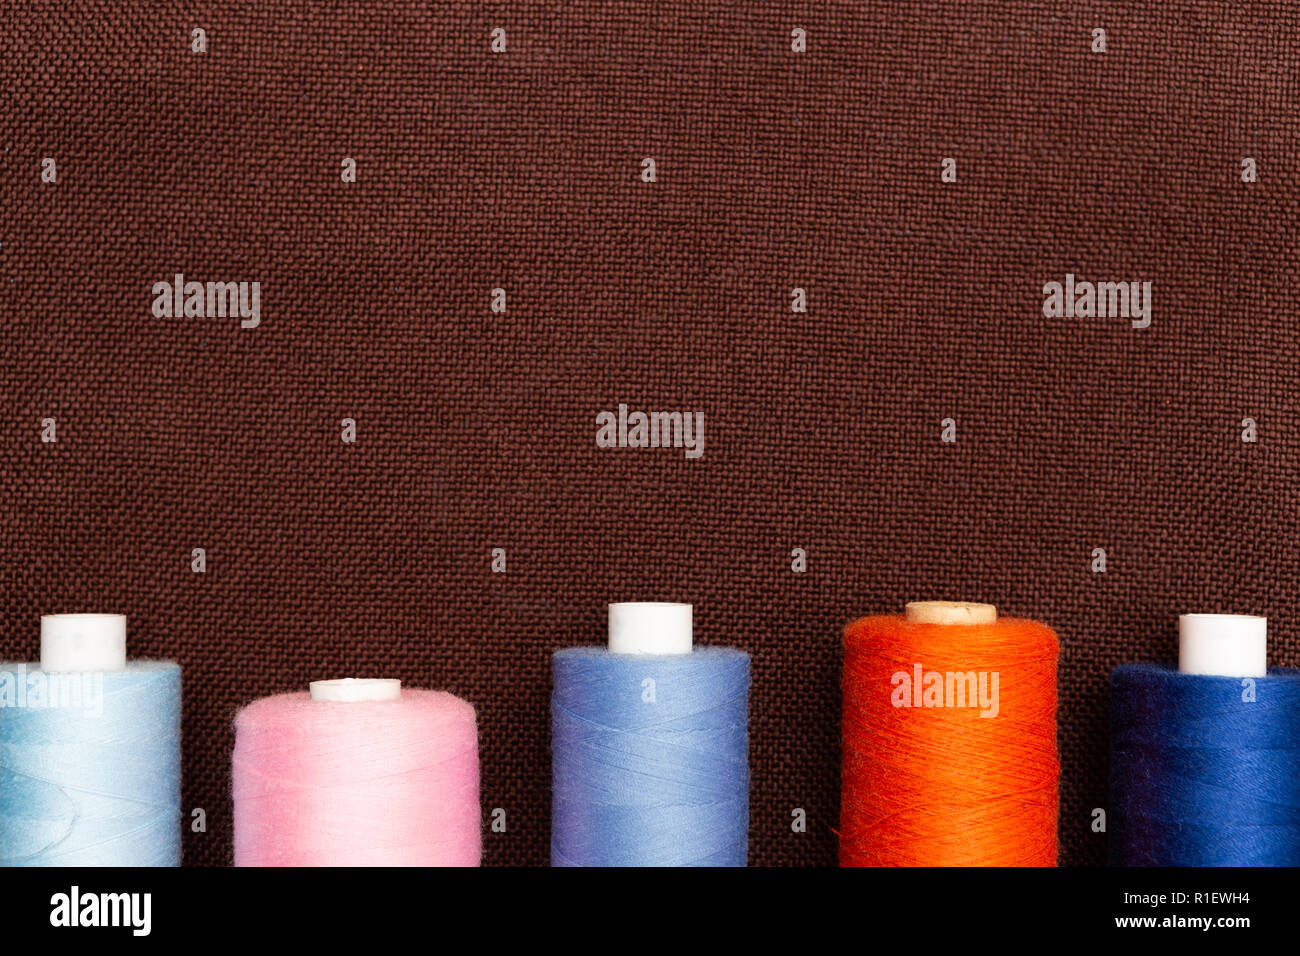 Thread spools on brown fabric background with blank copyspace for advertising Stock Photo